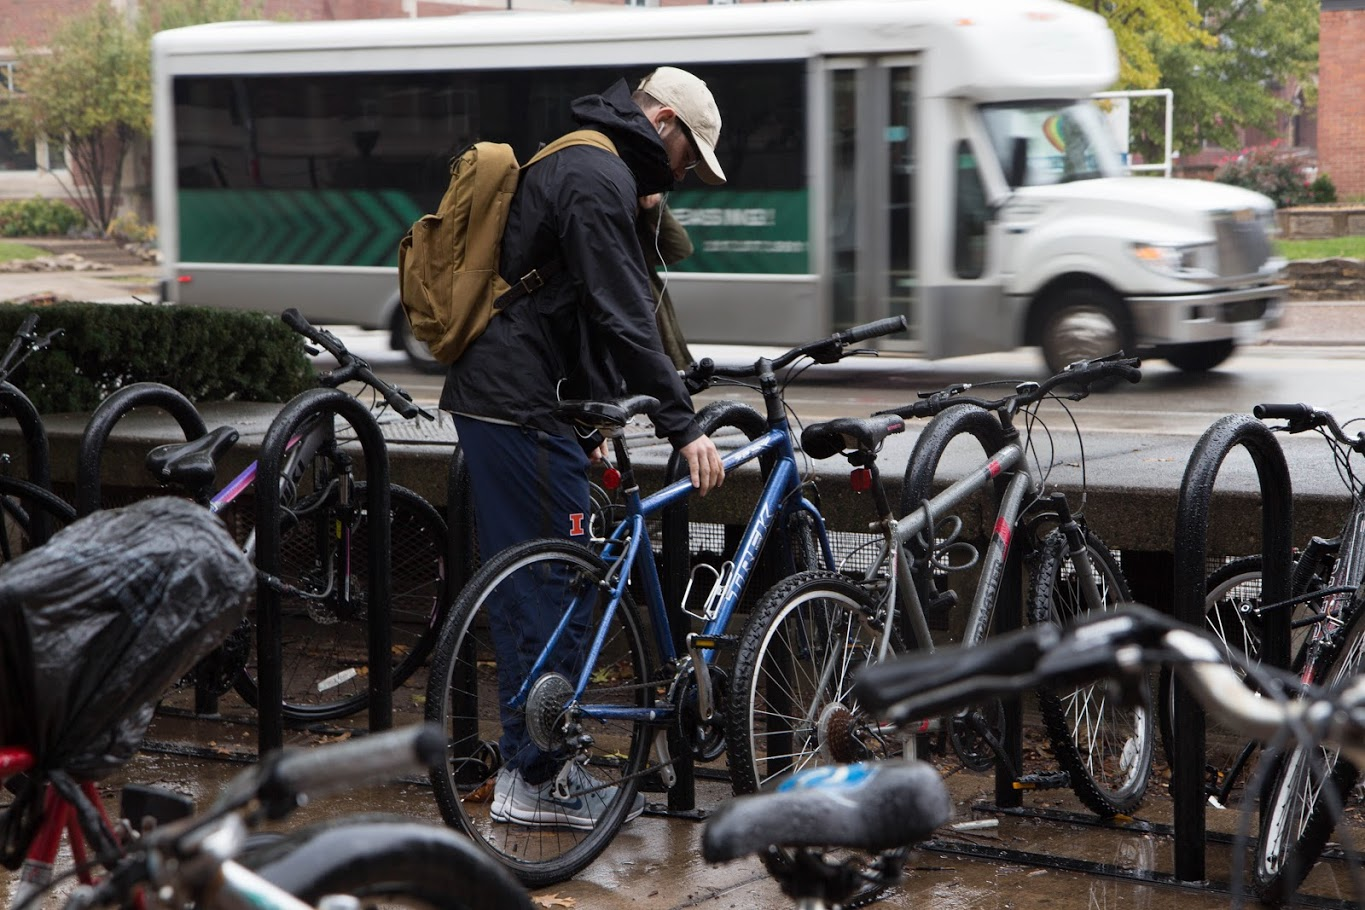 A student unlocks his bike next to Wright Street on Oct. 26. Columnist Andrew argues the existing dichotomy in the fat shaming debate is a fallacy and proposes a third cause: American culture. Bicycling is a great way to offset the sedentary lifestyle.